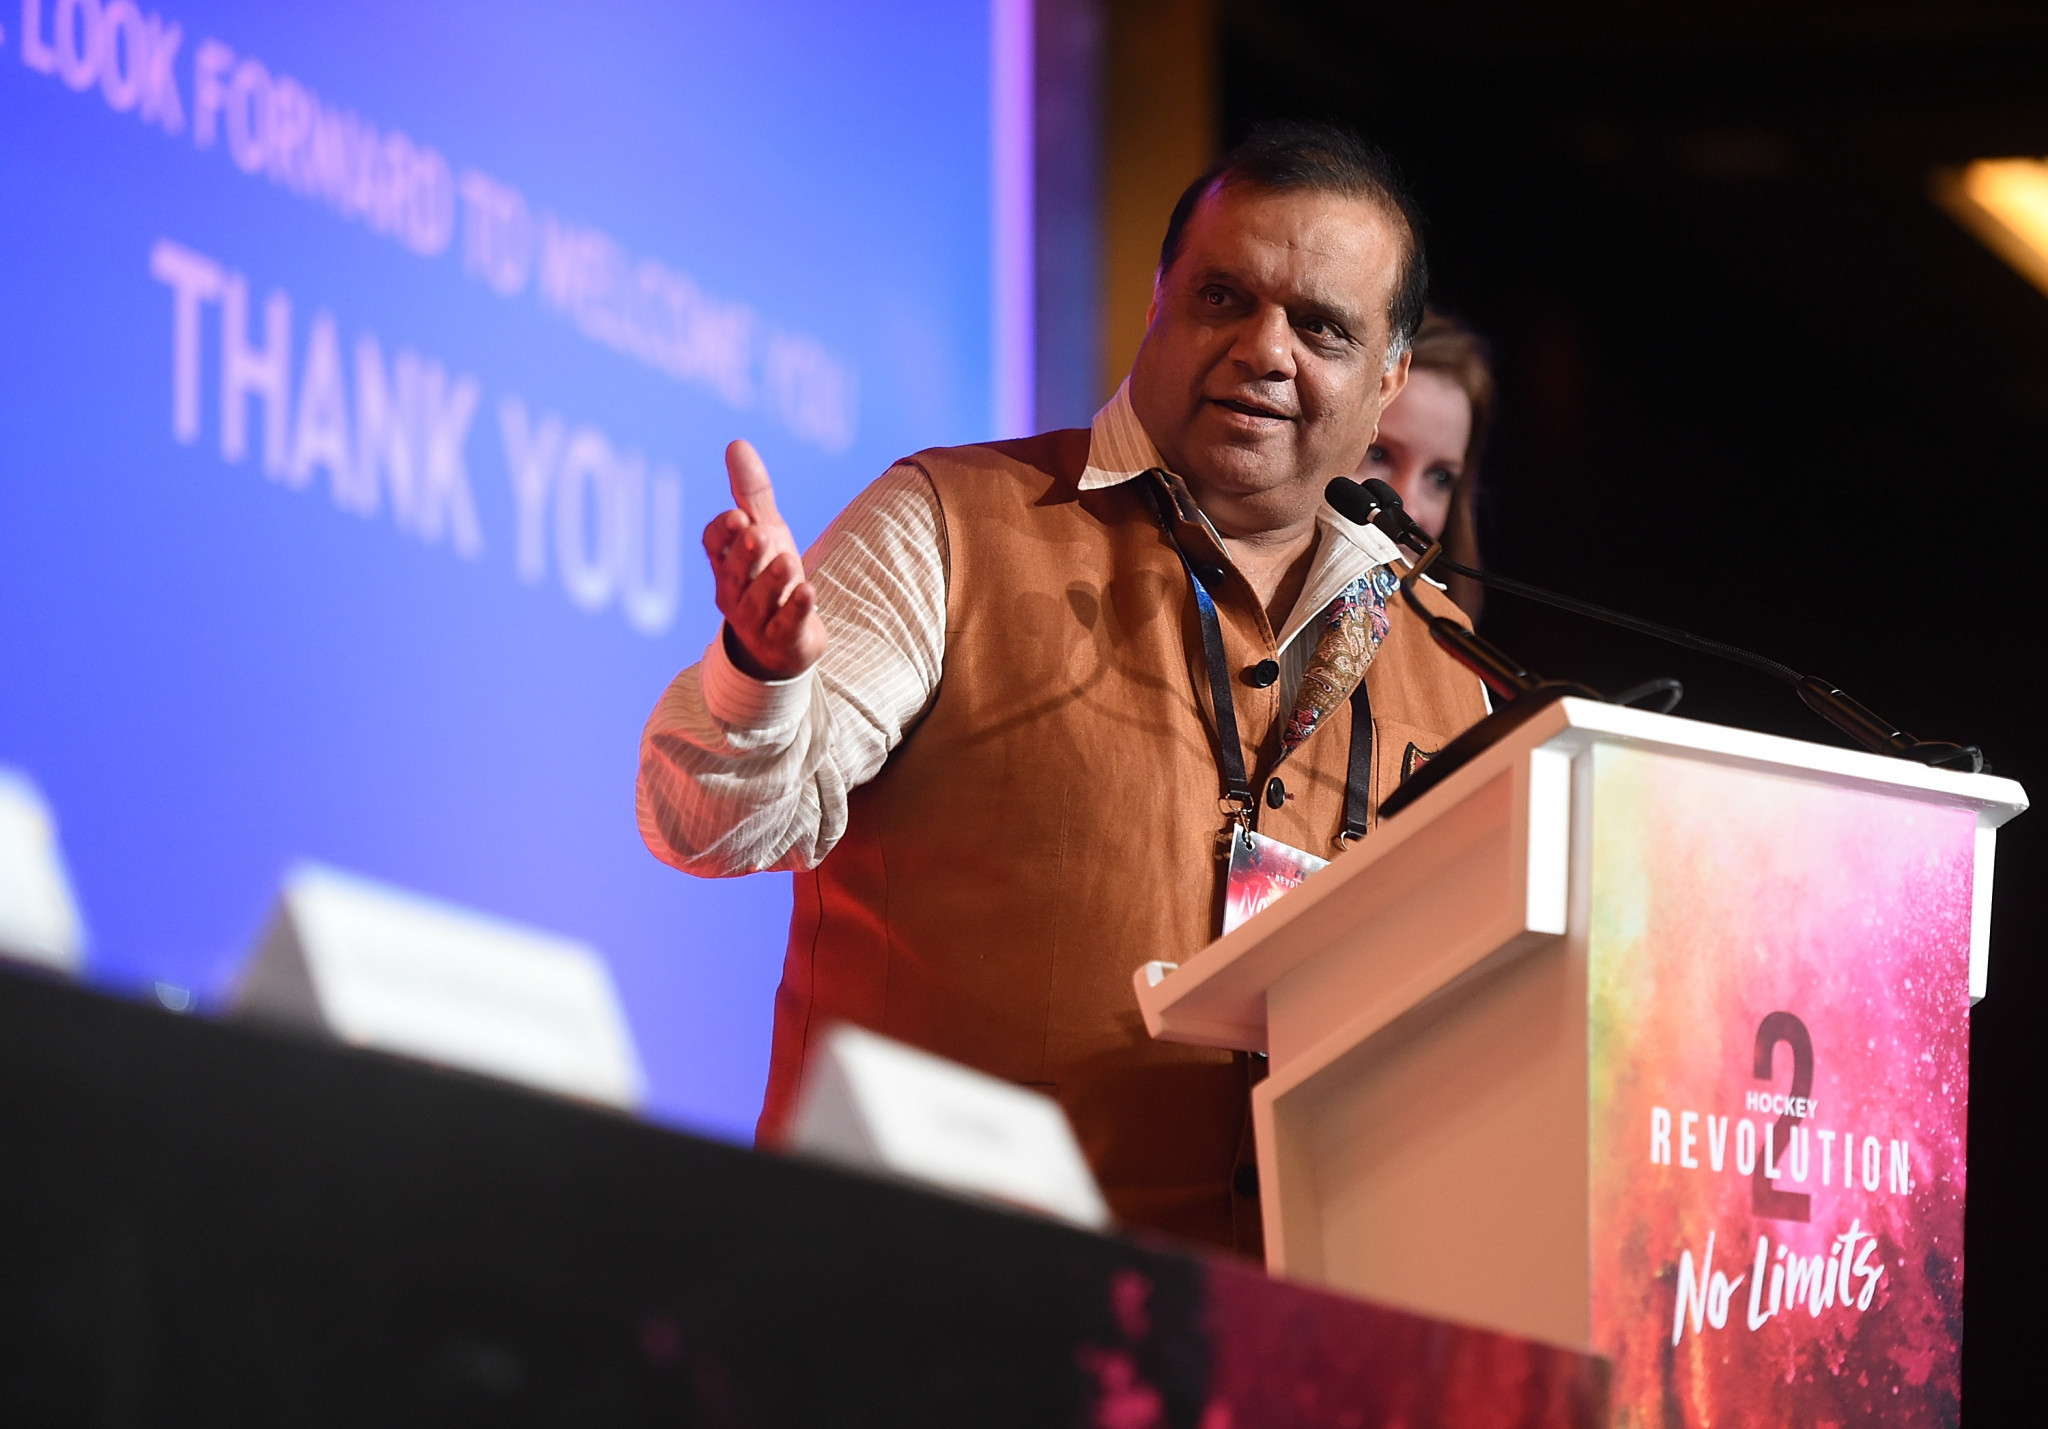 FIH President Narinder Batra wants hockey5s to appear on the Olympic programme alongside traditional field hockey ©Getty Images